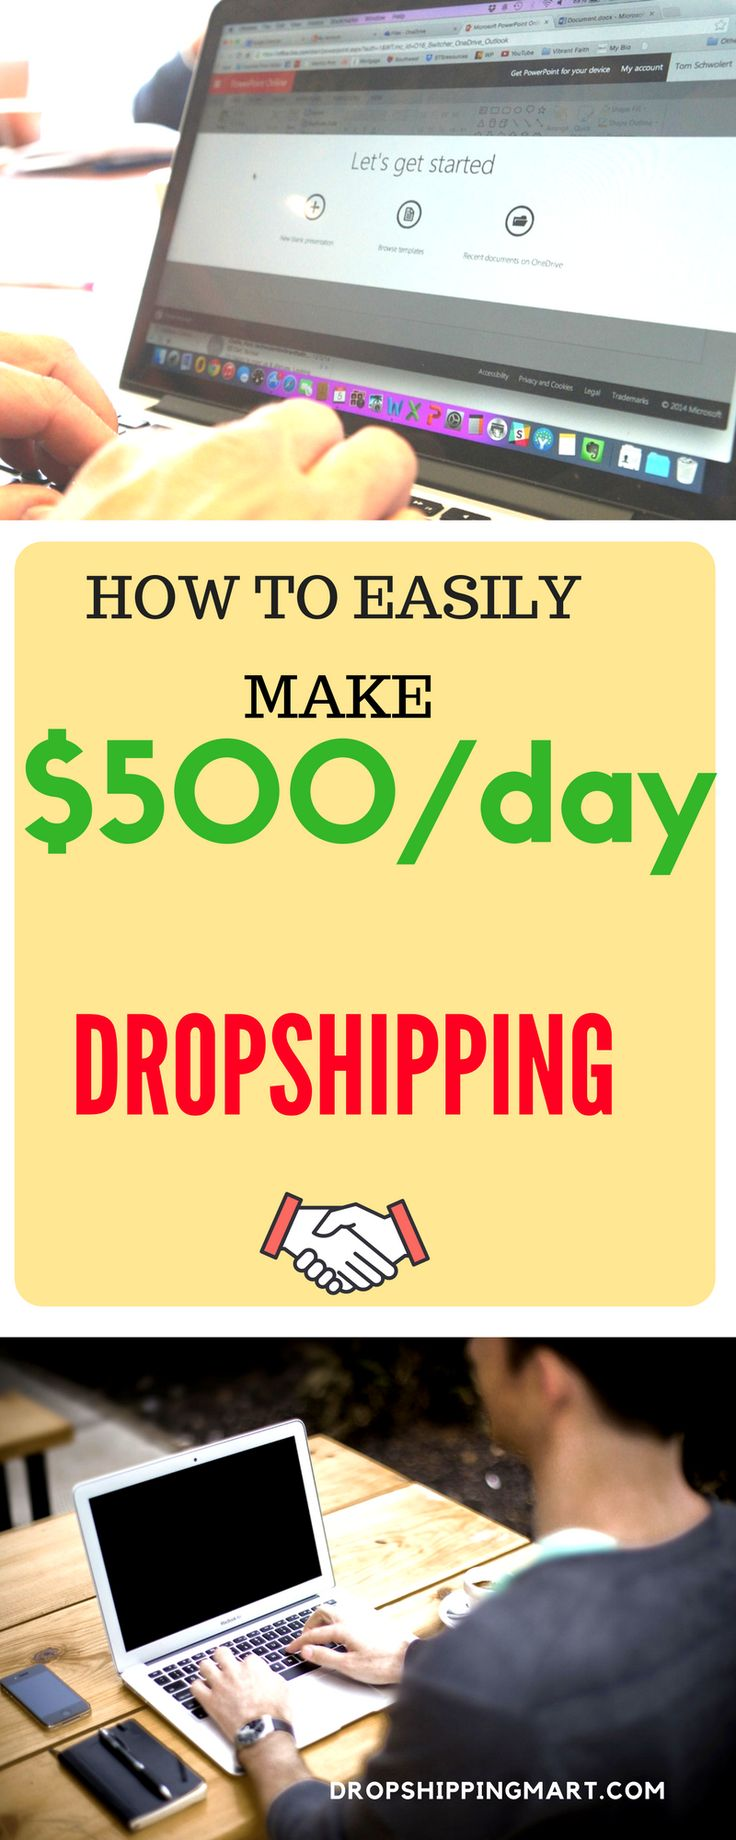 The wholesaler that we work with is #Aliexpress. They were recently listed on the US stock exchange with a value of $20billion, and have proved that they are more than capable of handling your orders for you. #dropshipping